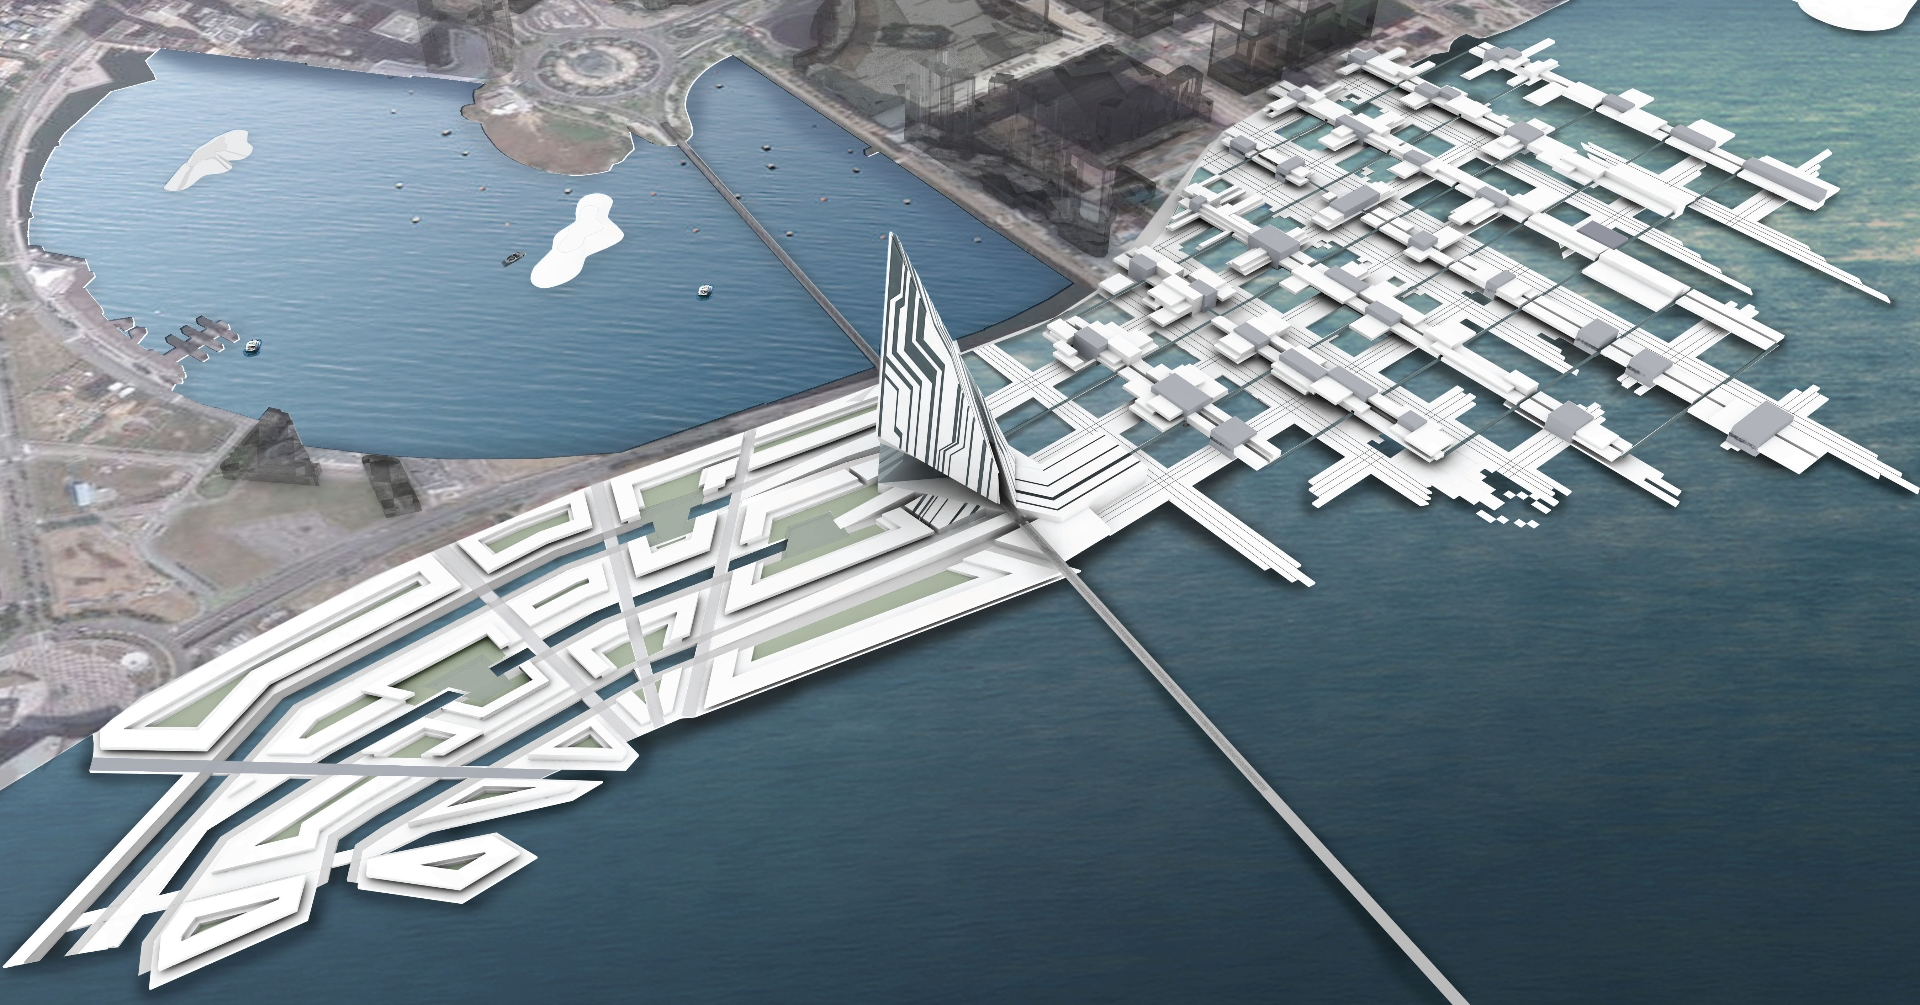 Enlarge Photo: The Possibility of an Island: Designing the New Macau Waterfront 11